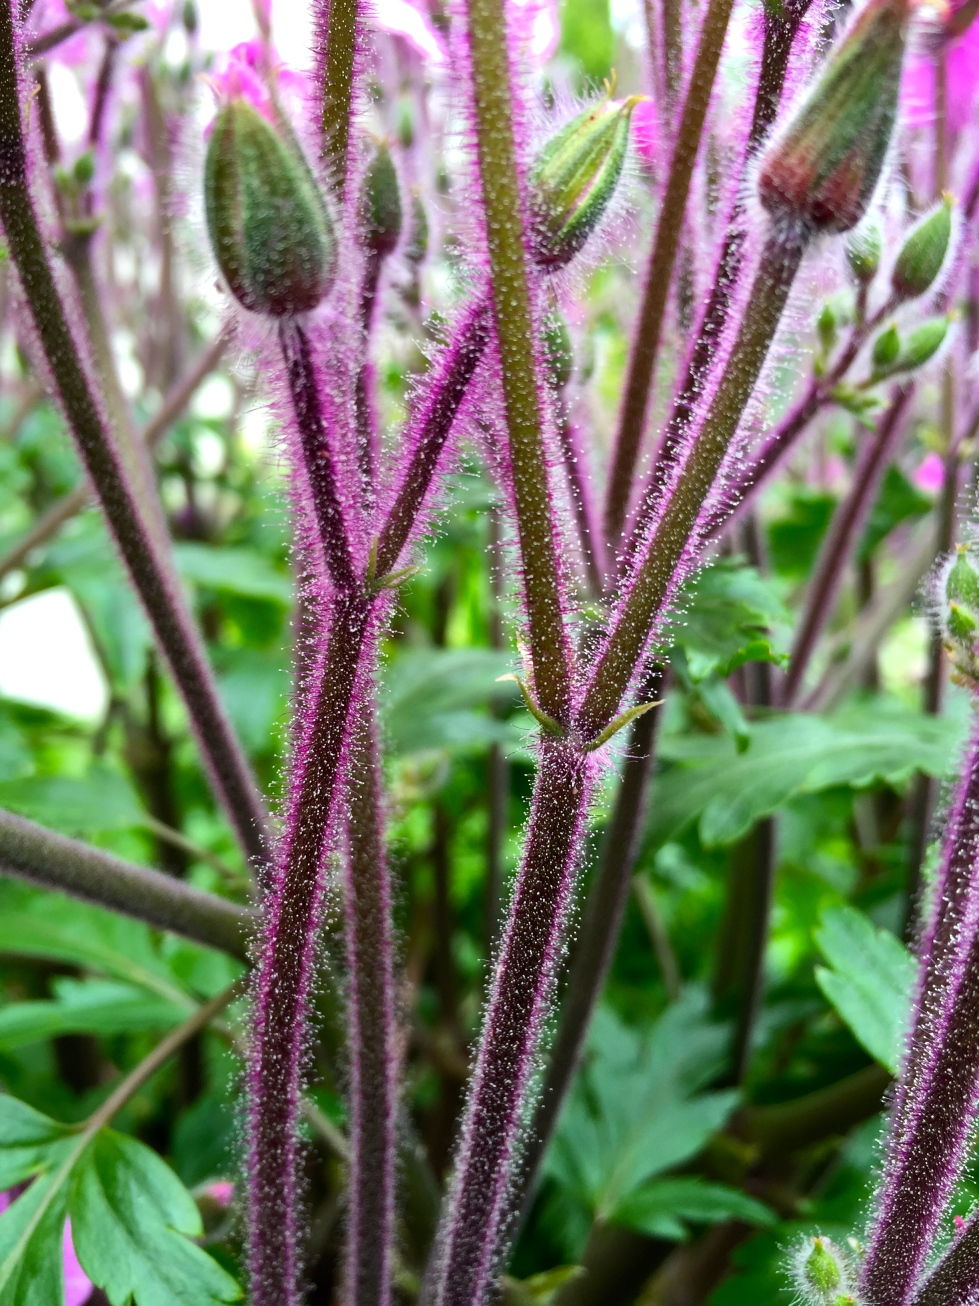 The flower stalks of Geranium maderense are covered in sticky pink hairs